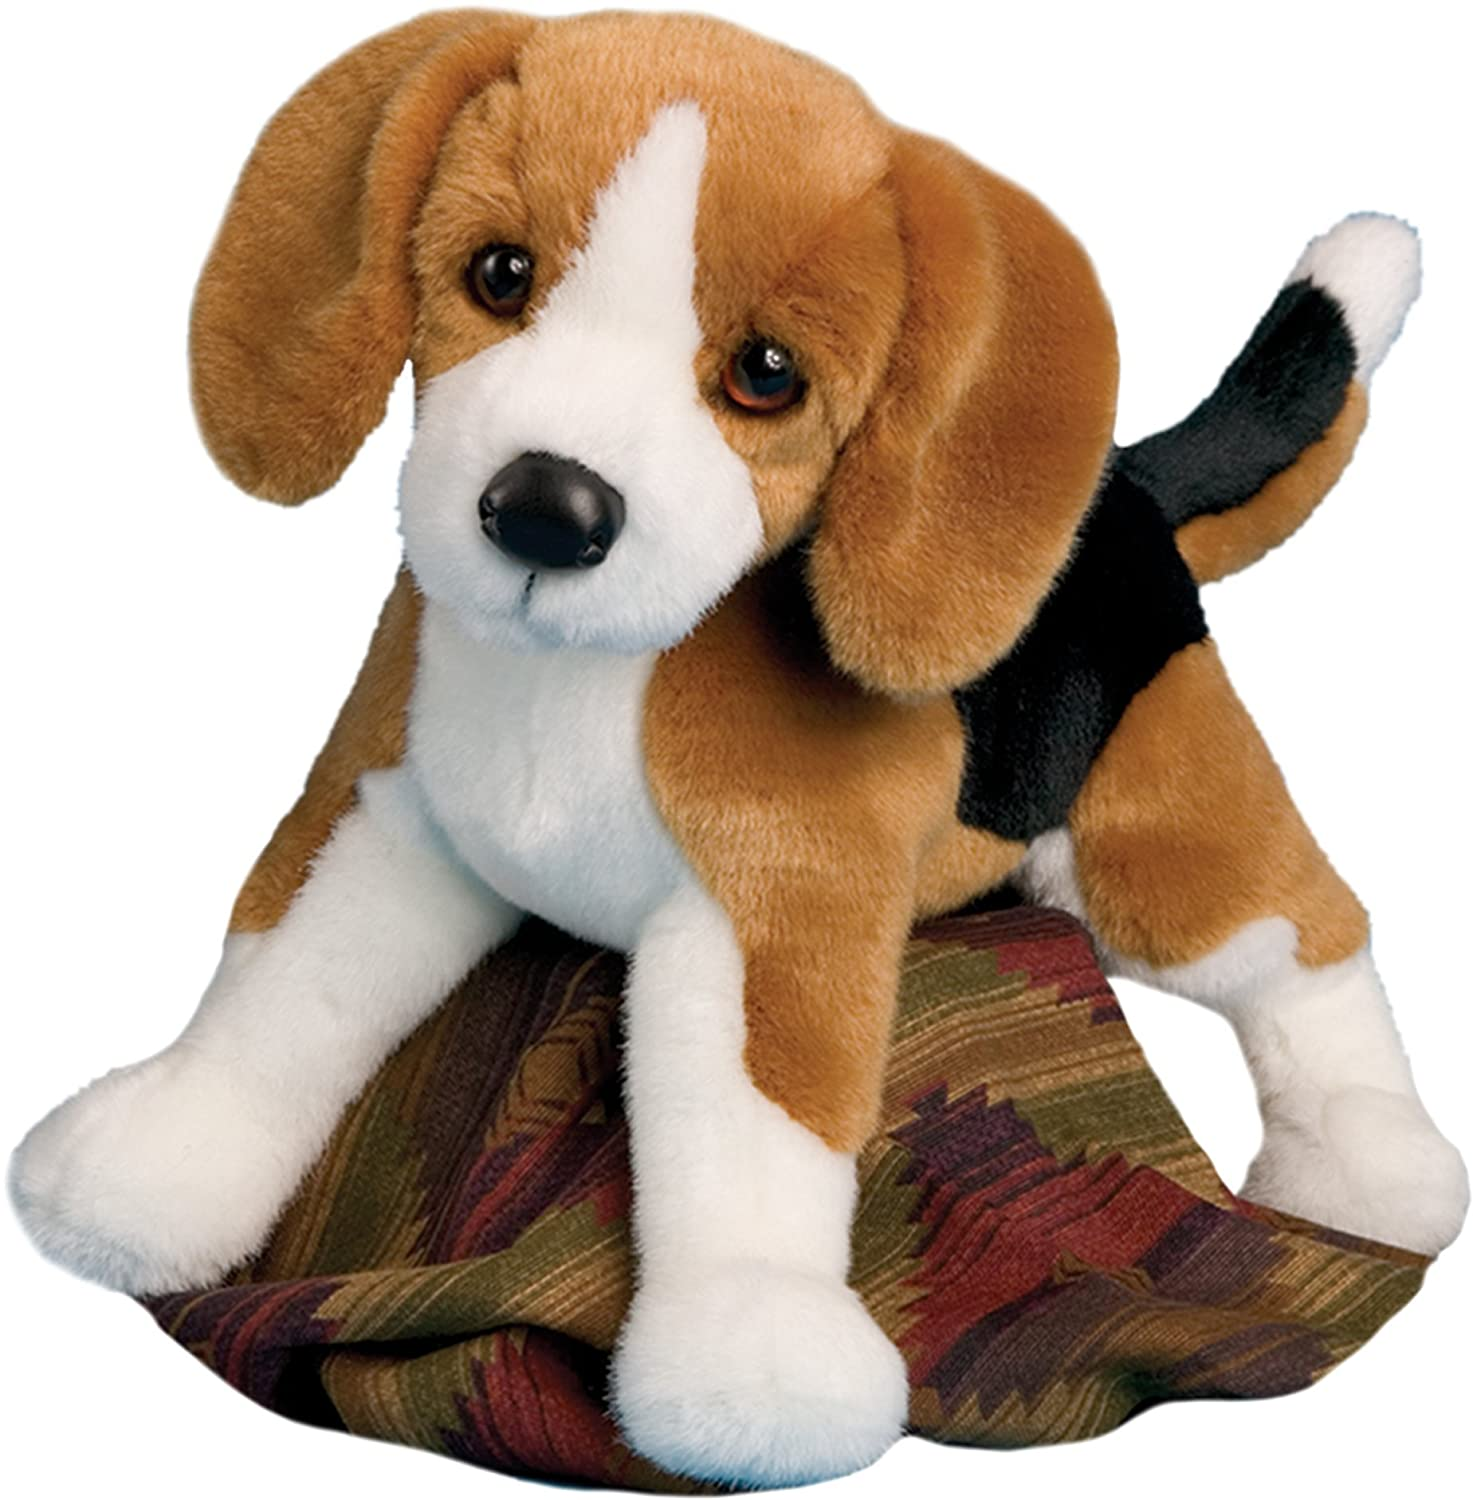 Best Sea Beagle Adorable Dog - 81eerNzswOL  Collection_697997  .jpg